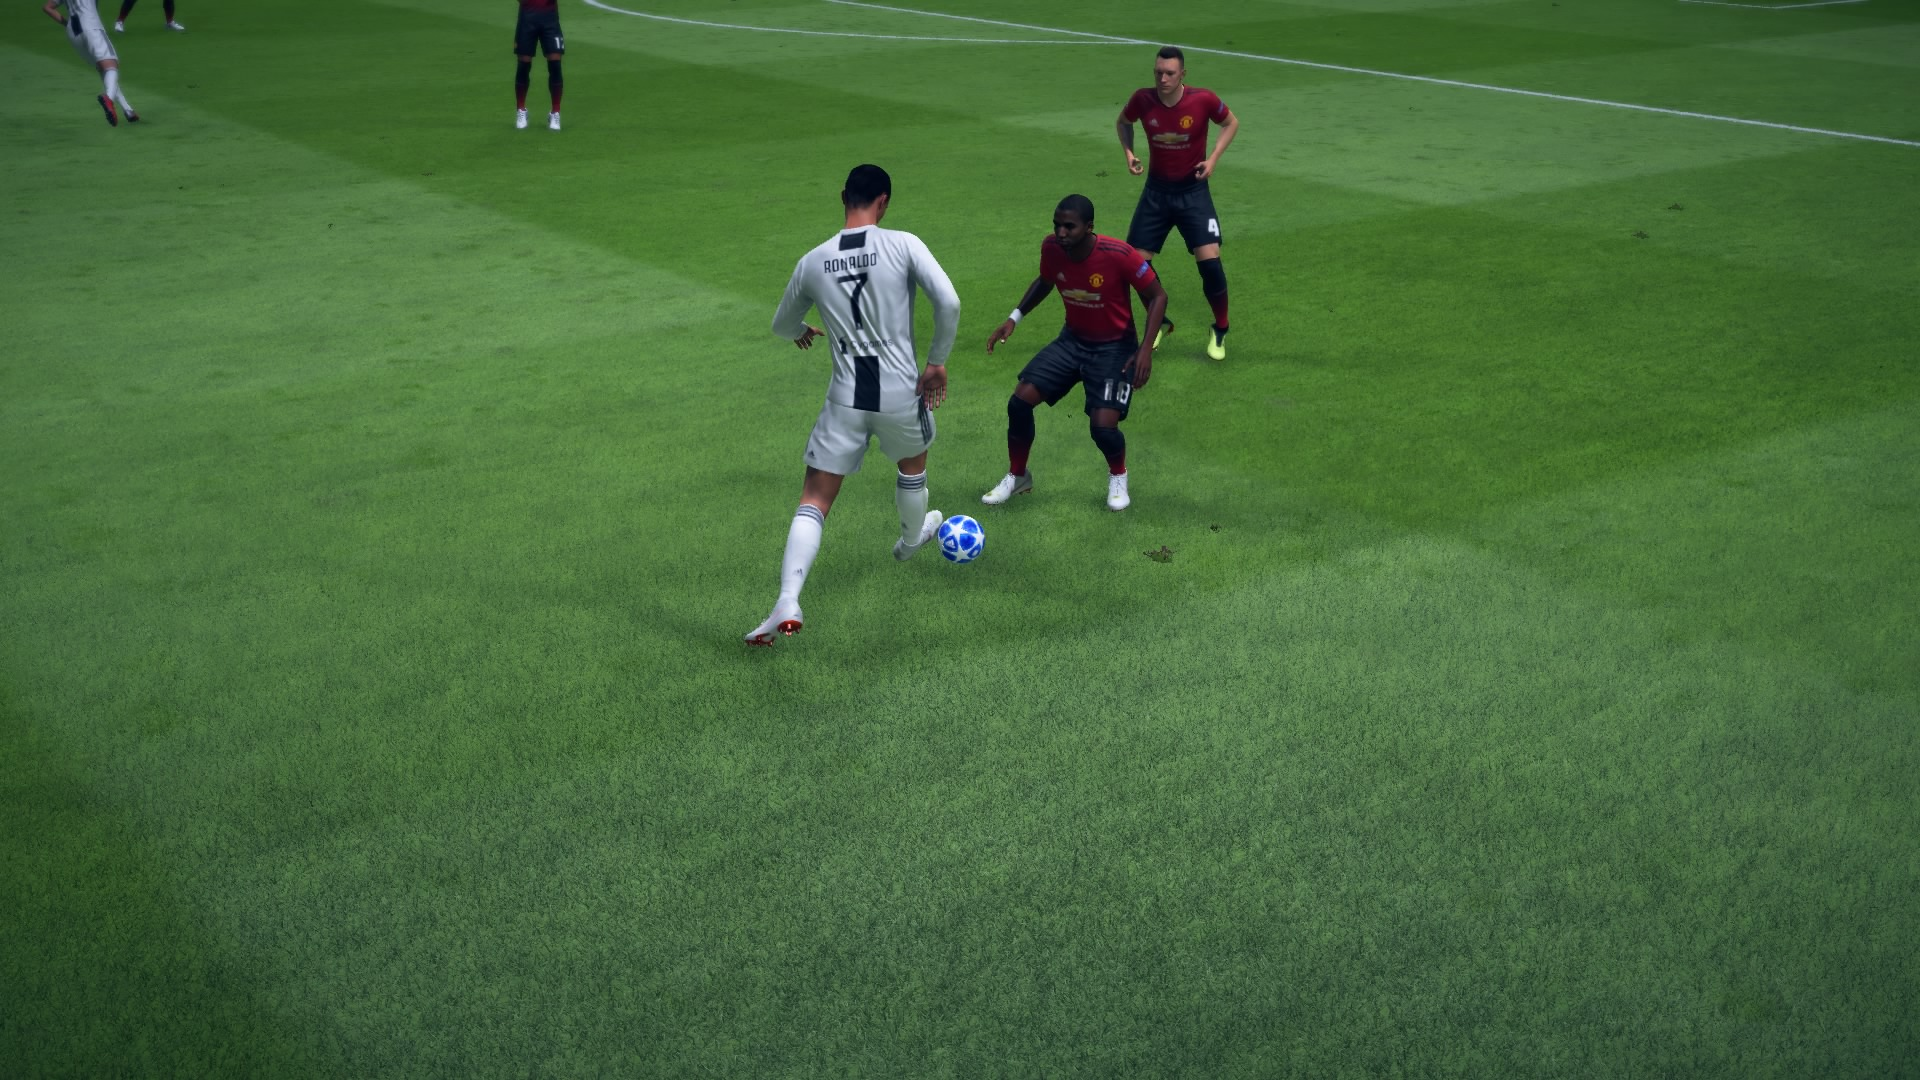 First FIFA 19 update is out now on PC, mostly fixes bugs - VG247